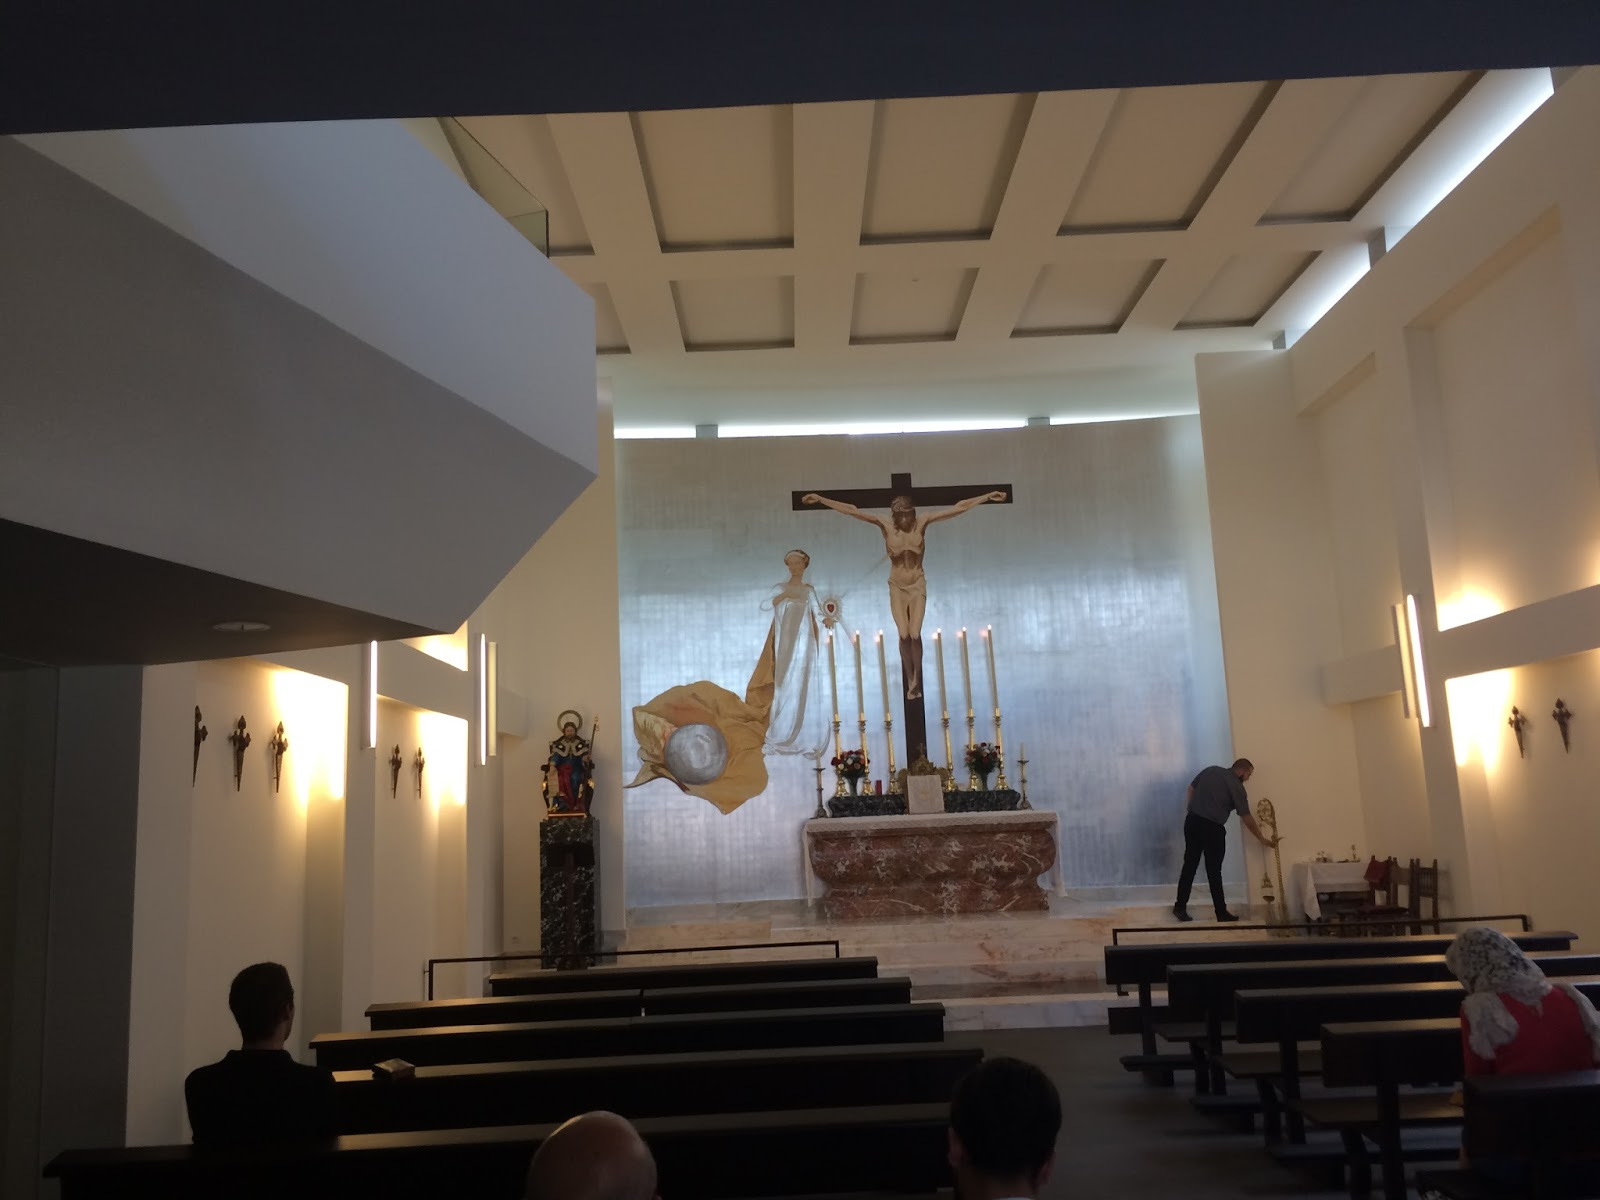 Hideous New SSPX Church in Madrid! - page 1 - SSPX